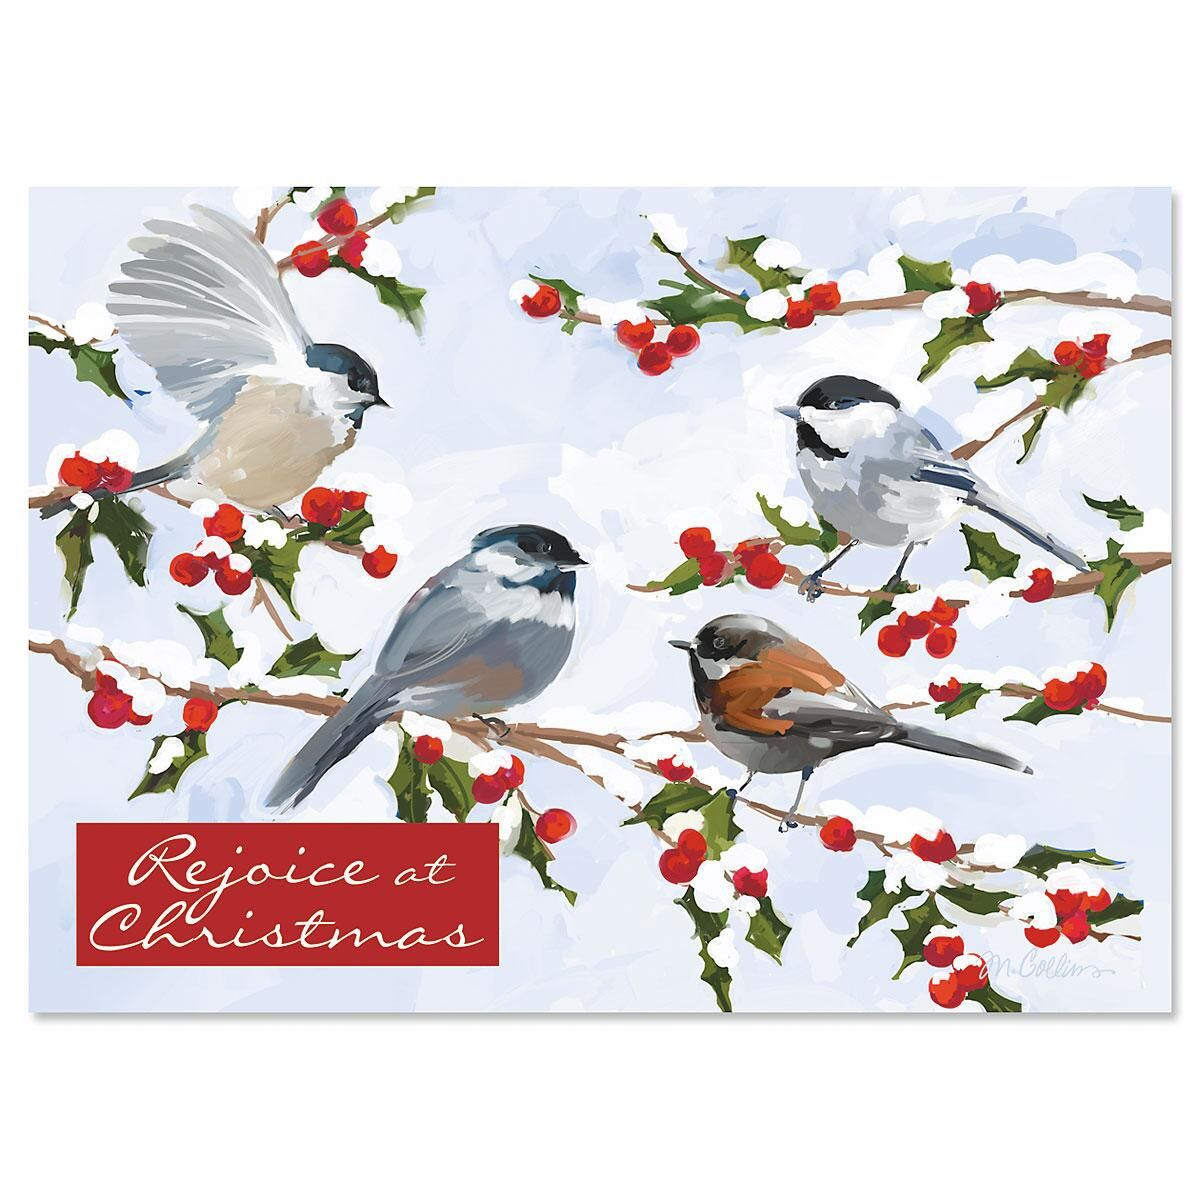 Chickadees and Berries Personalized Christmas Cards - Set of 18